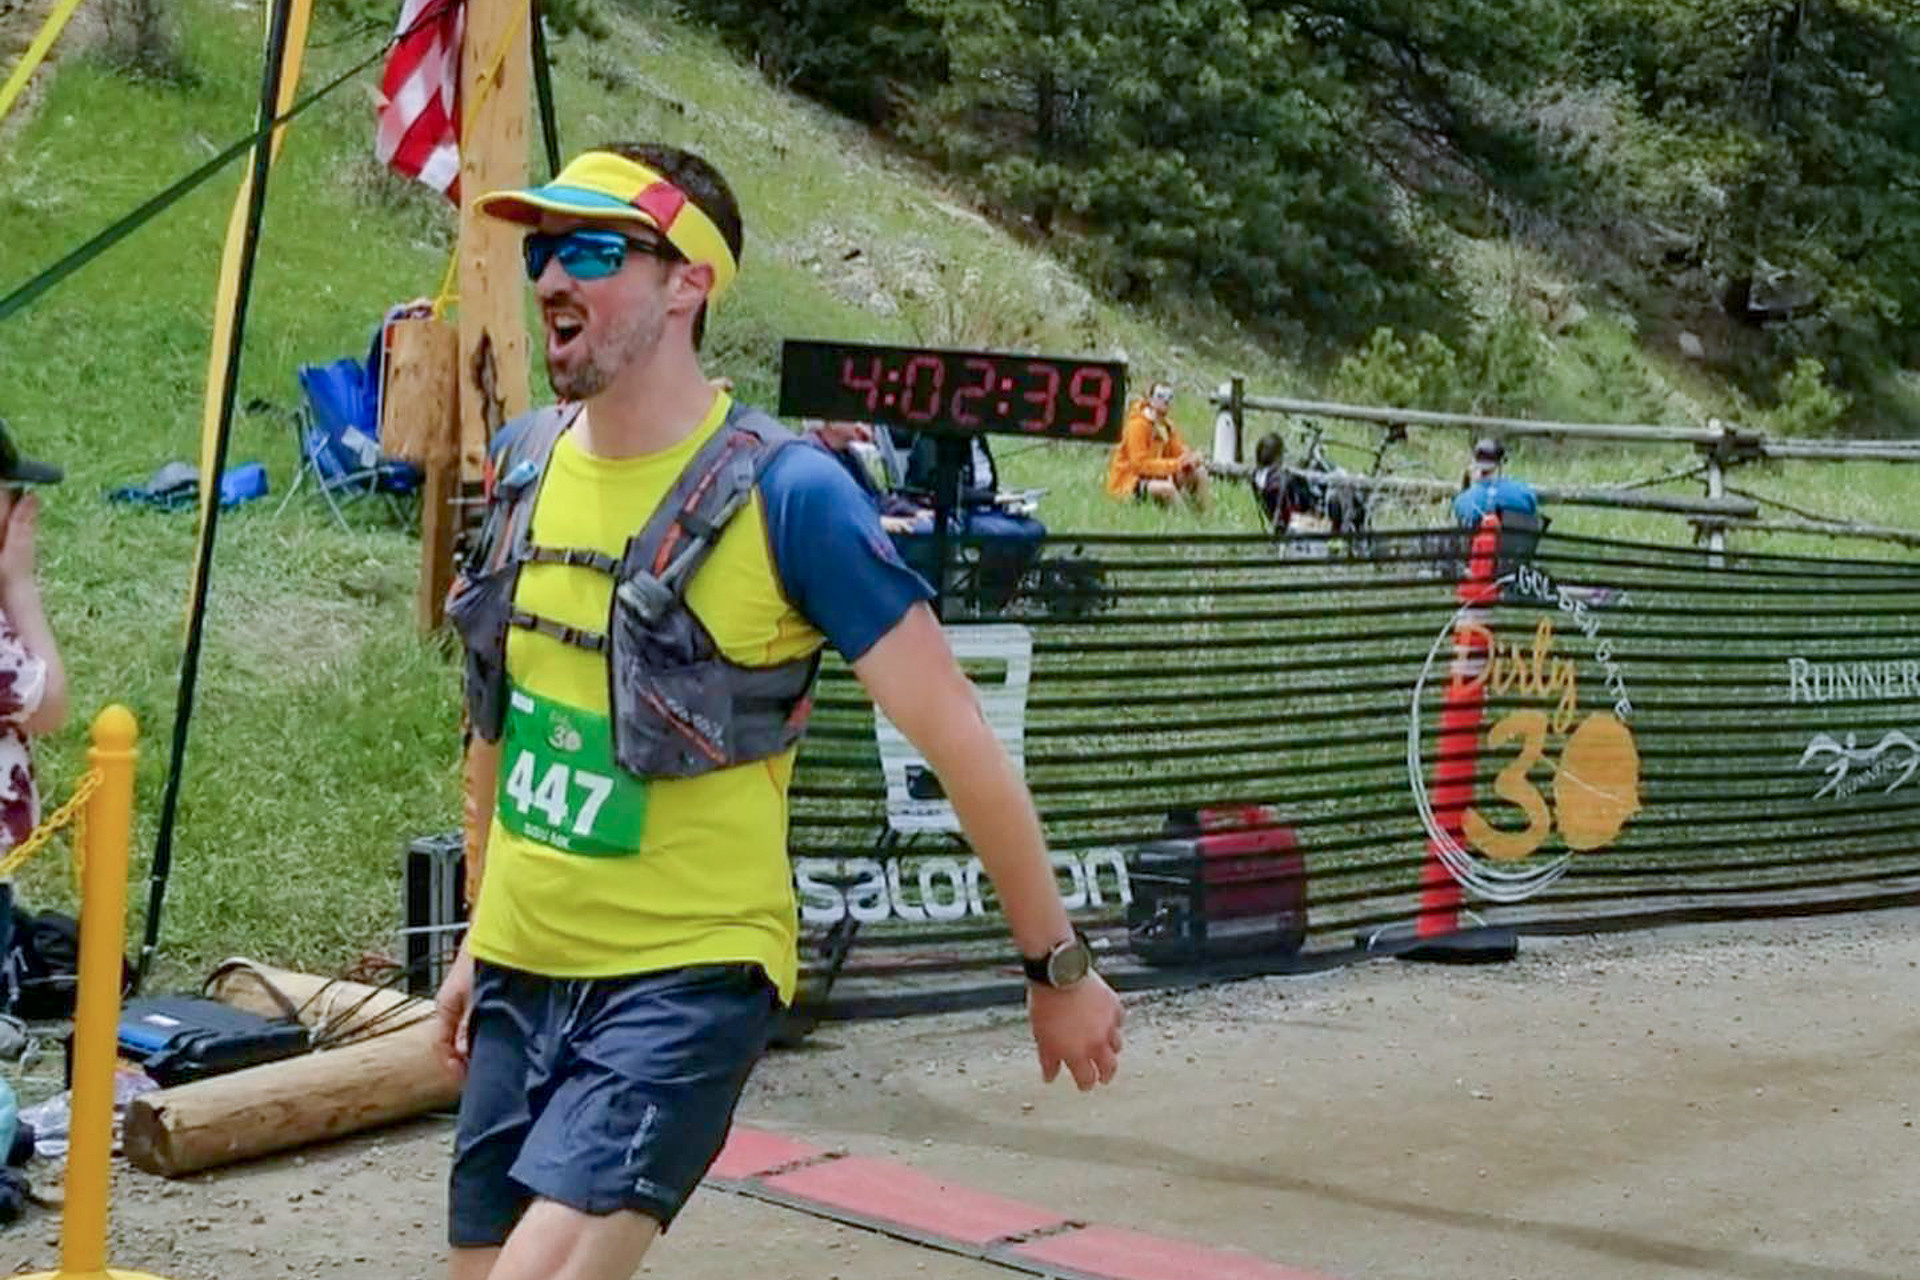 Armin Gooden is set to compete at the Leadville 100-Mile Trail Race this Saturday